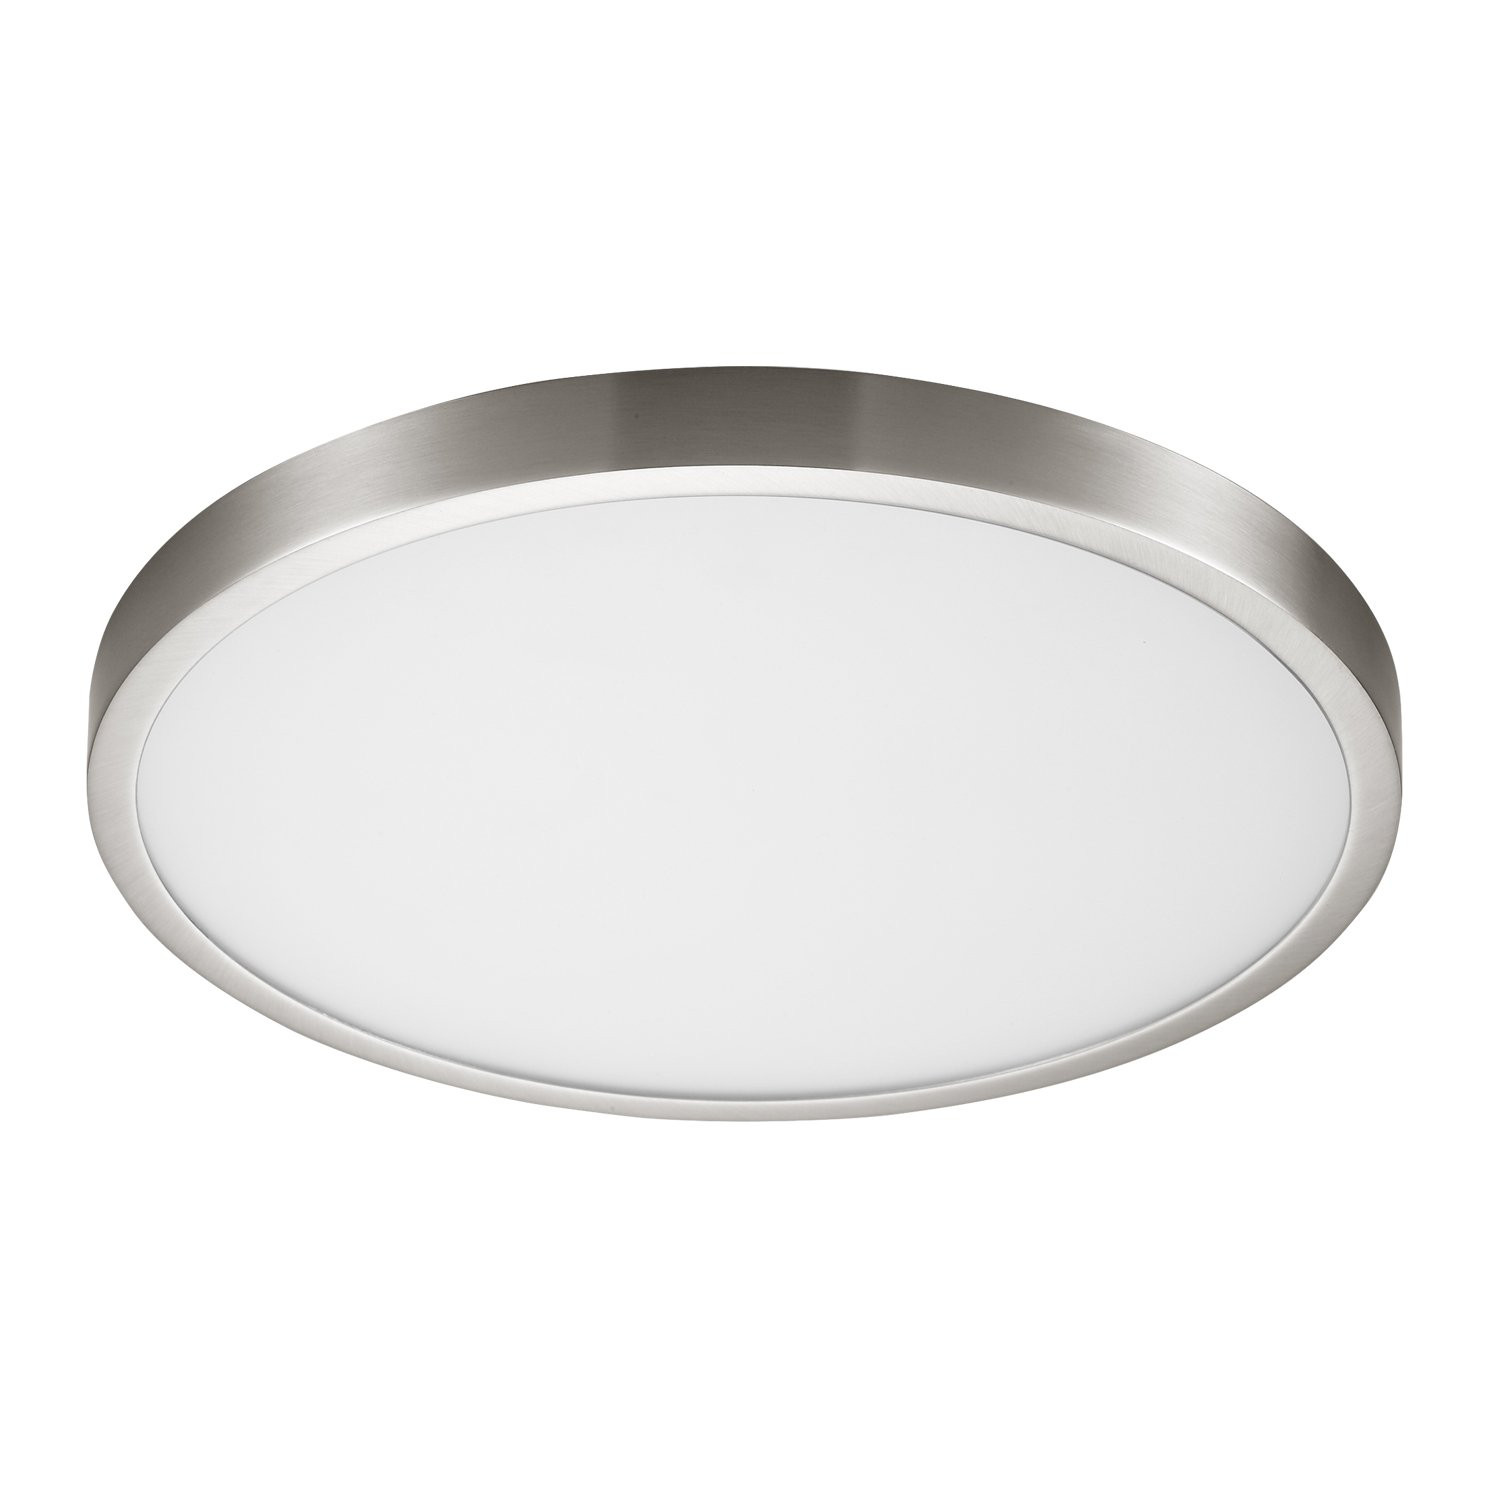 24w Led Dimmable Ceiling Light Round Flush Mounted Fixture: 6500K Dimmable LED Round Ceiling